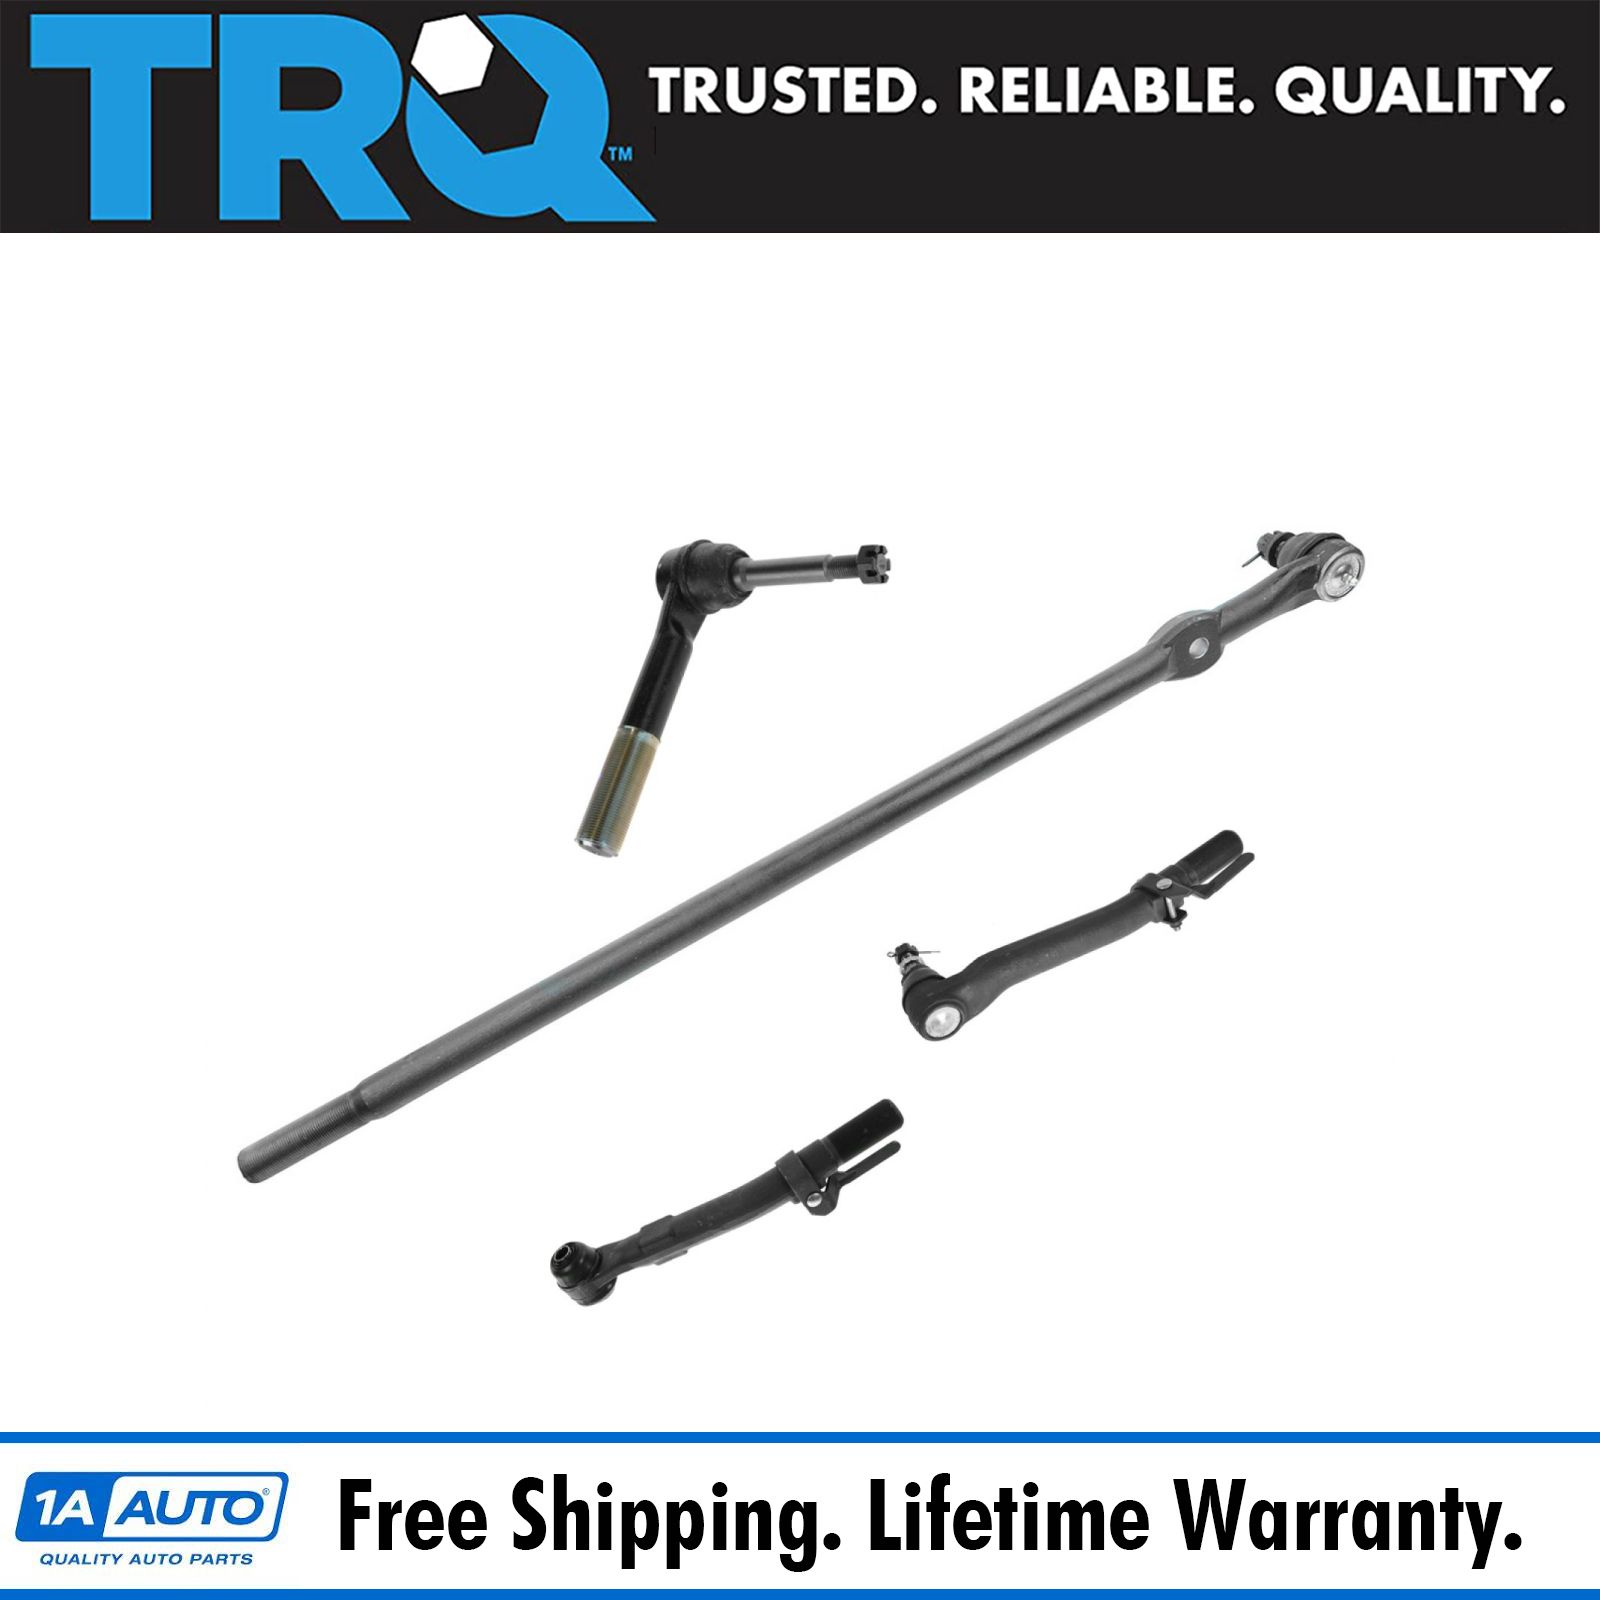 2008 For Ford F-250 Super Duty Front Right Outer Steering Tie Rod End Engine: 5.4L, 6.4L, 6.8L ; Note: 4WD